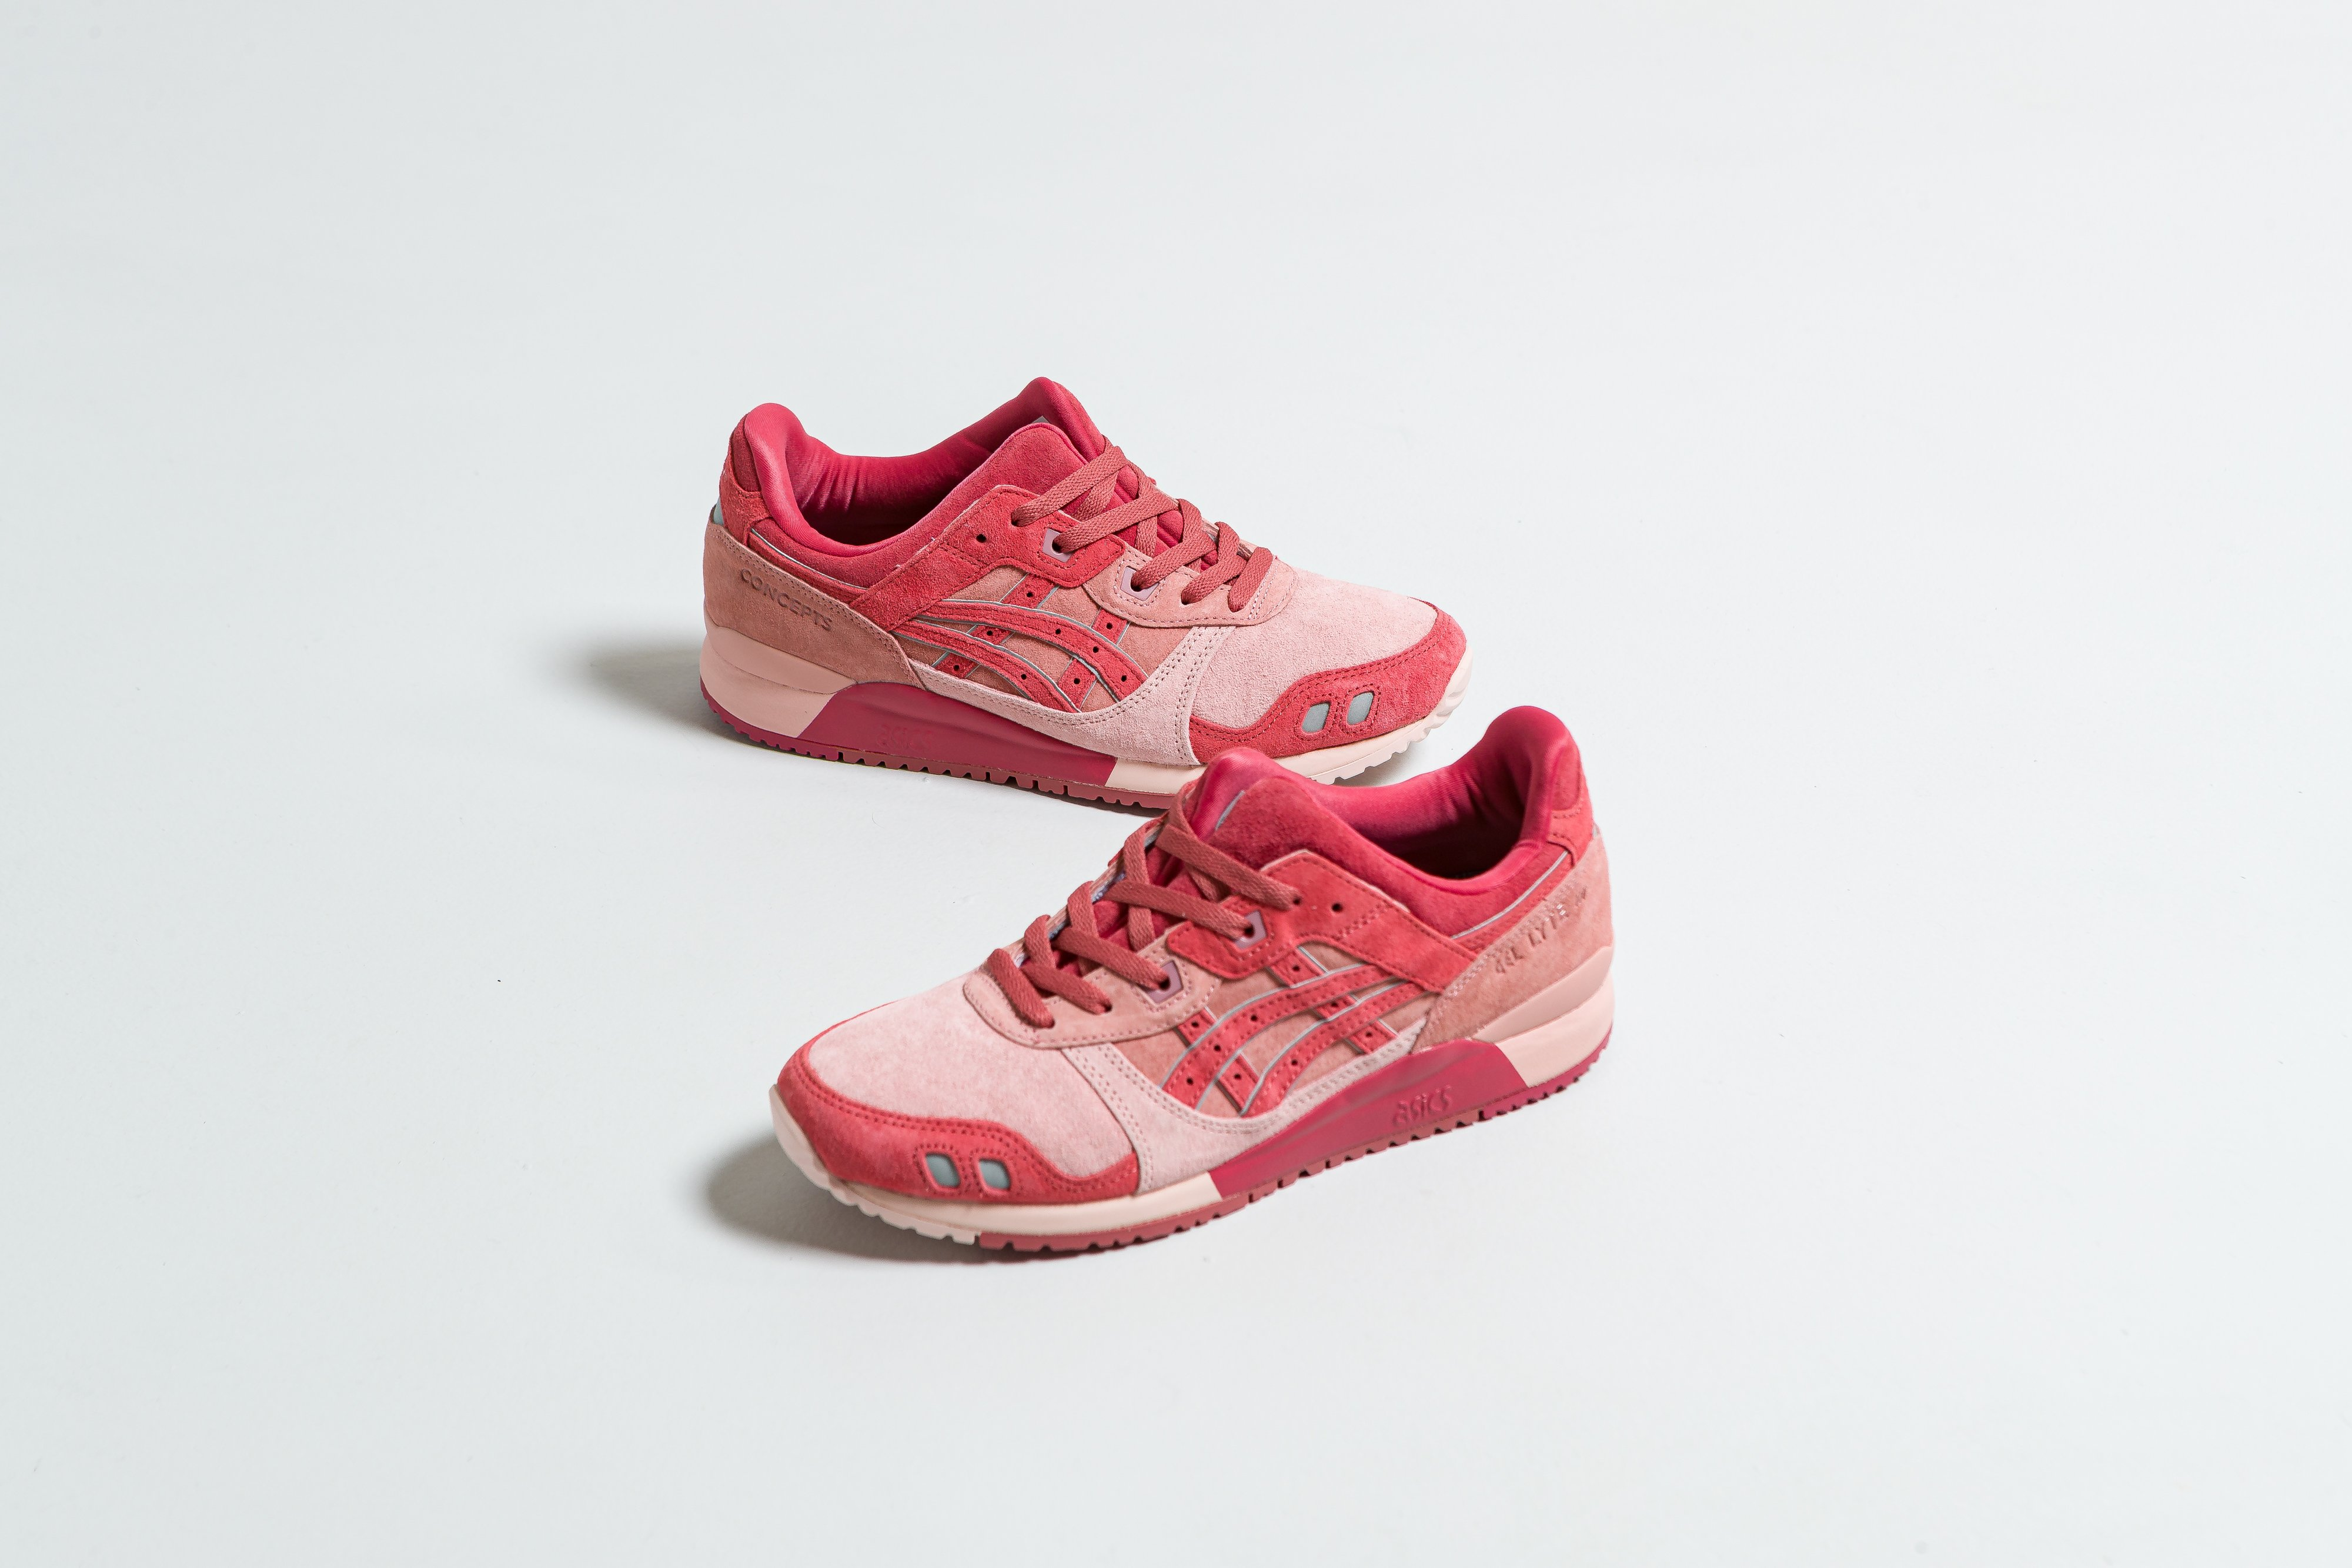 Up There Store - Asics X Concepts Gel-Lyte III 'Otoro'